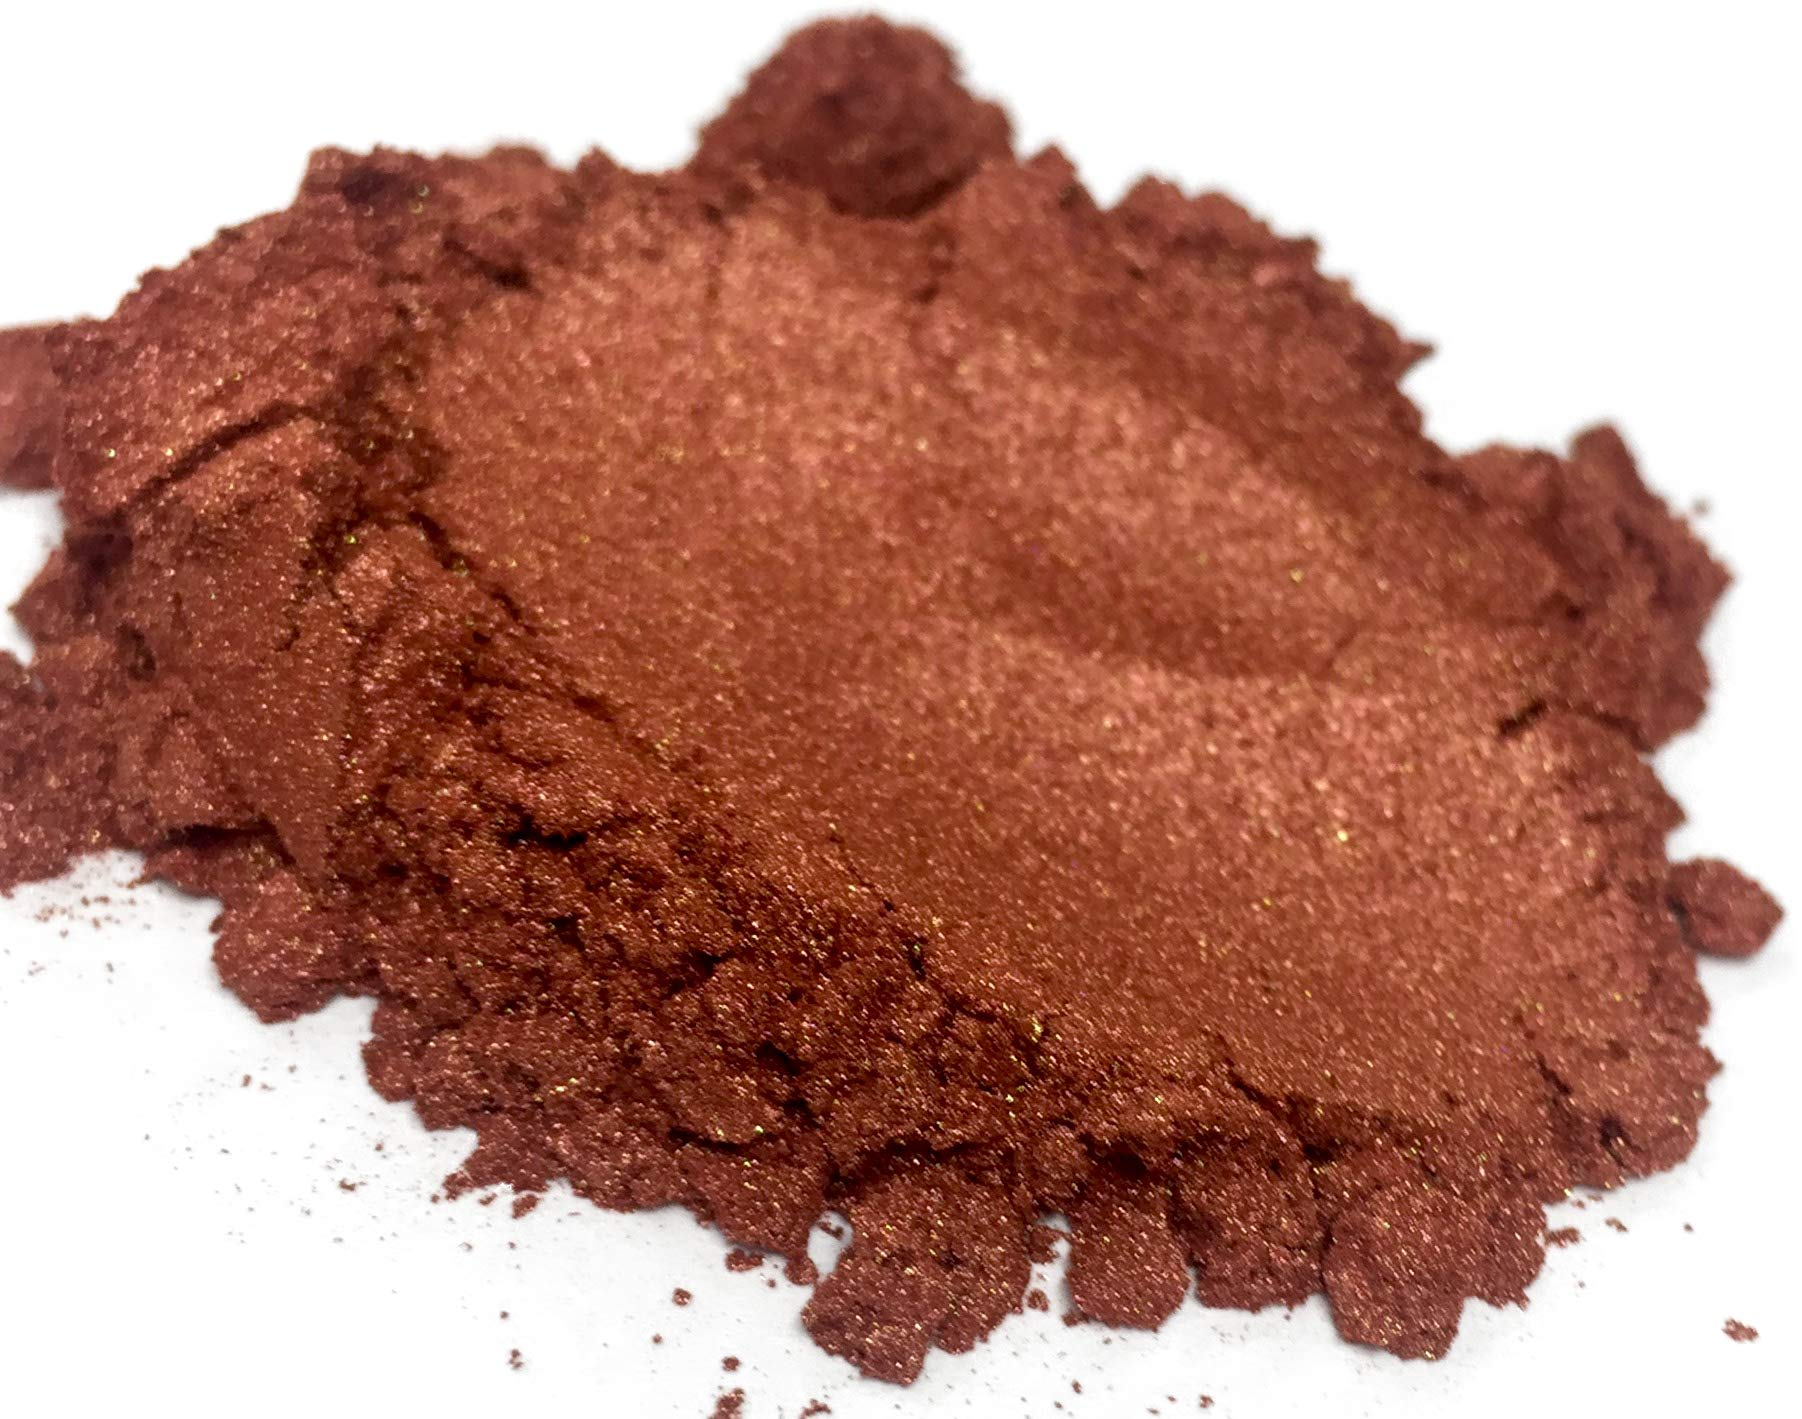 42g/1.5oz''COPPER PENNY'' Mica Powder Pigment (Epoxy,Resin,Soap,Plastidip) Black Diamond Pigments